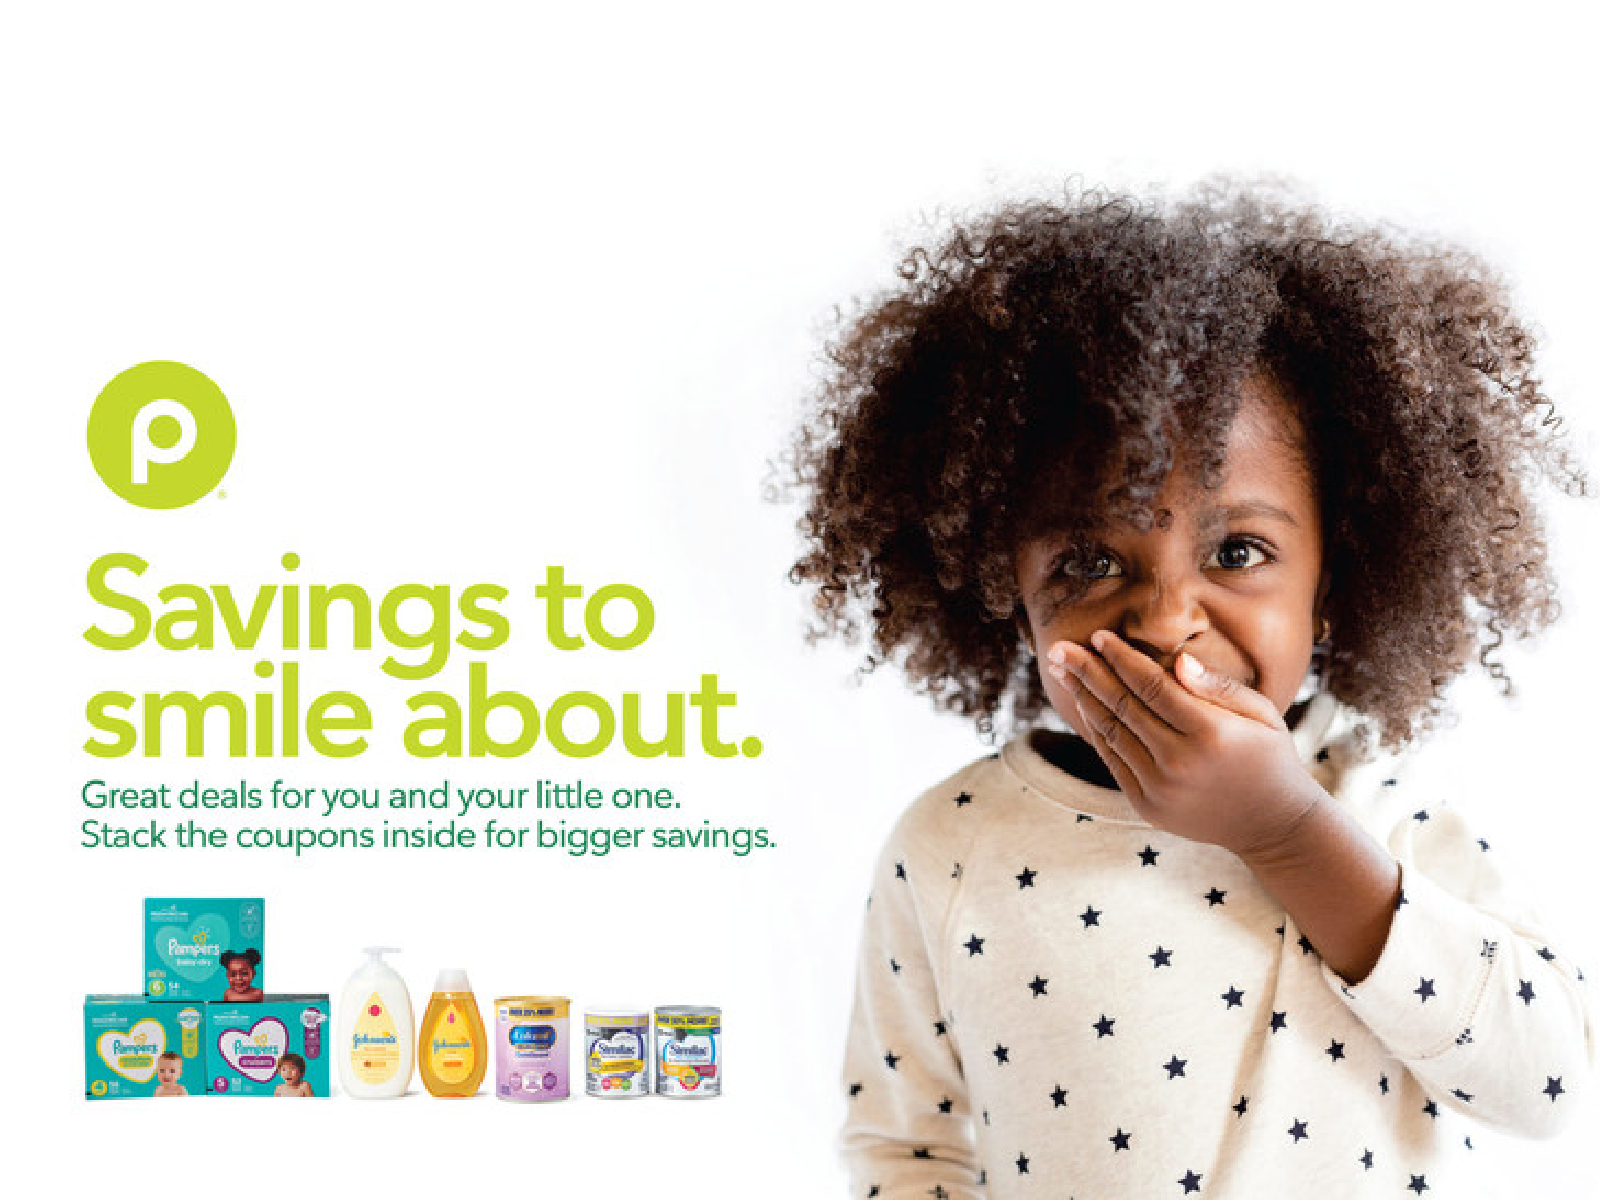 New Baby Booklet - Coupons Valid Through 8/25 on I Heart Publix